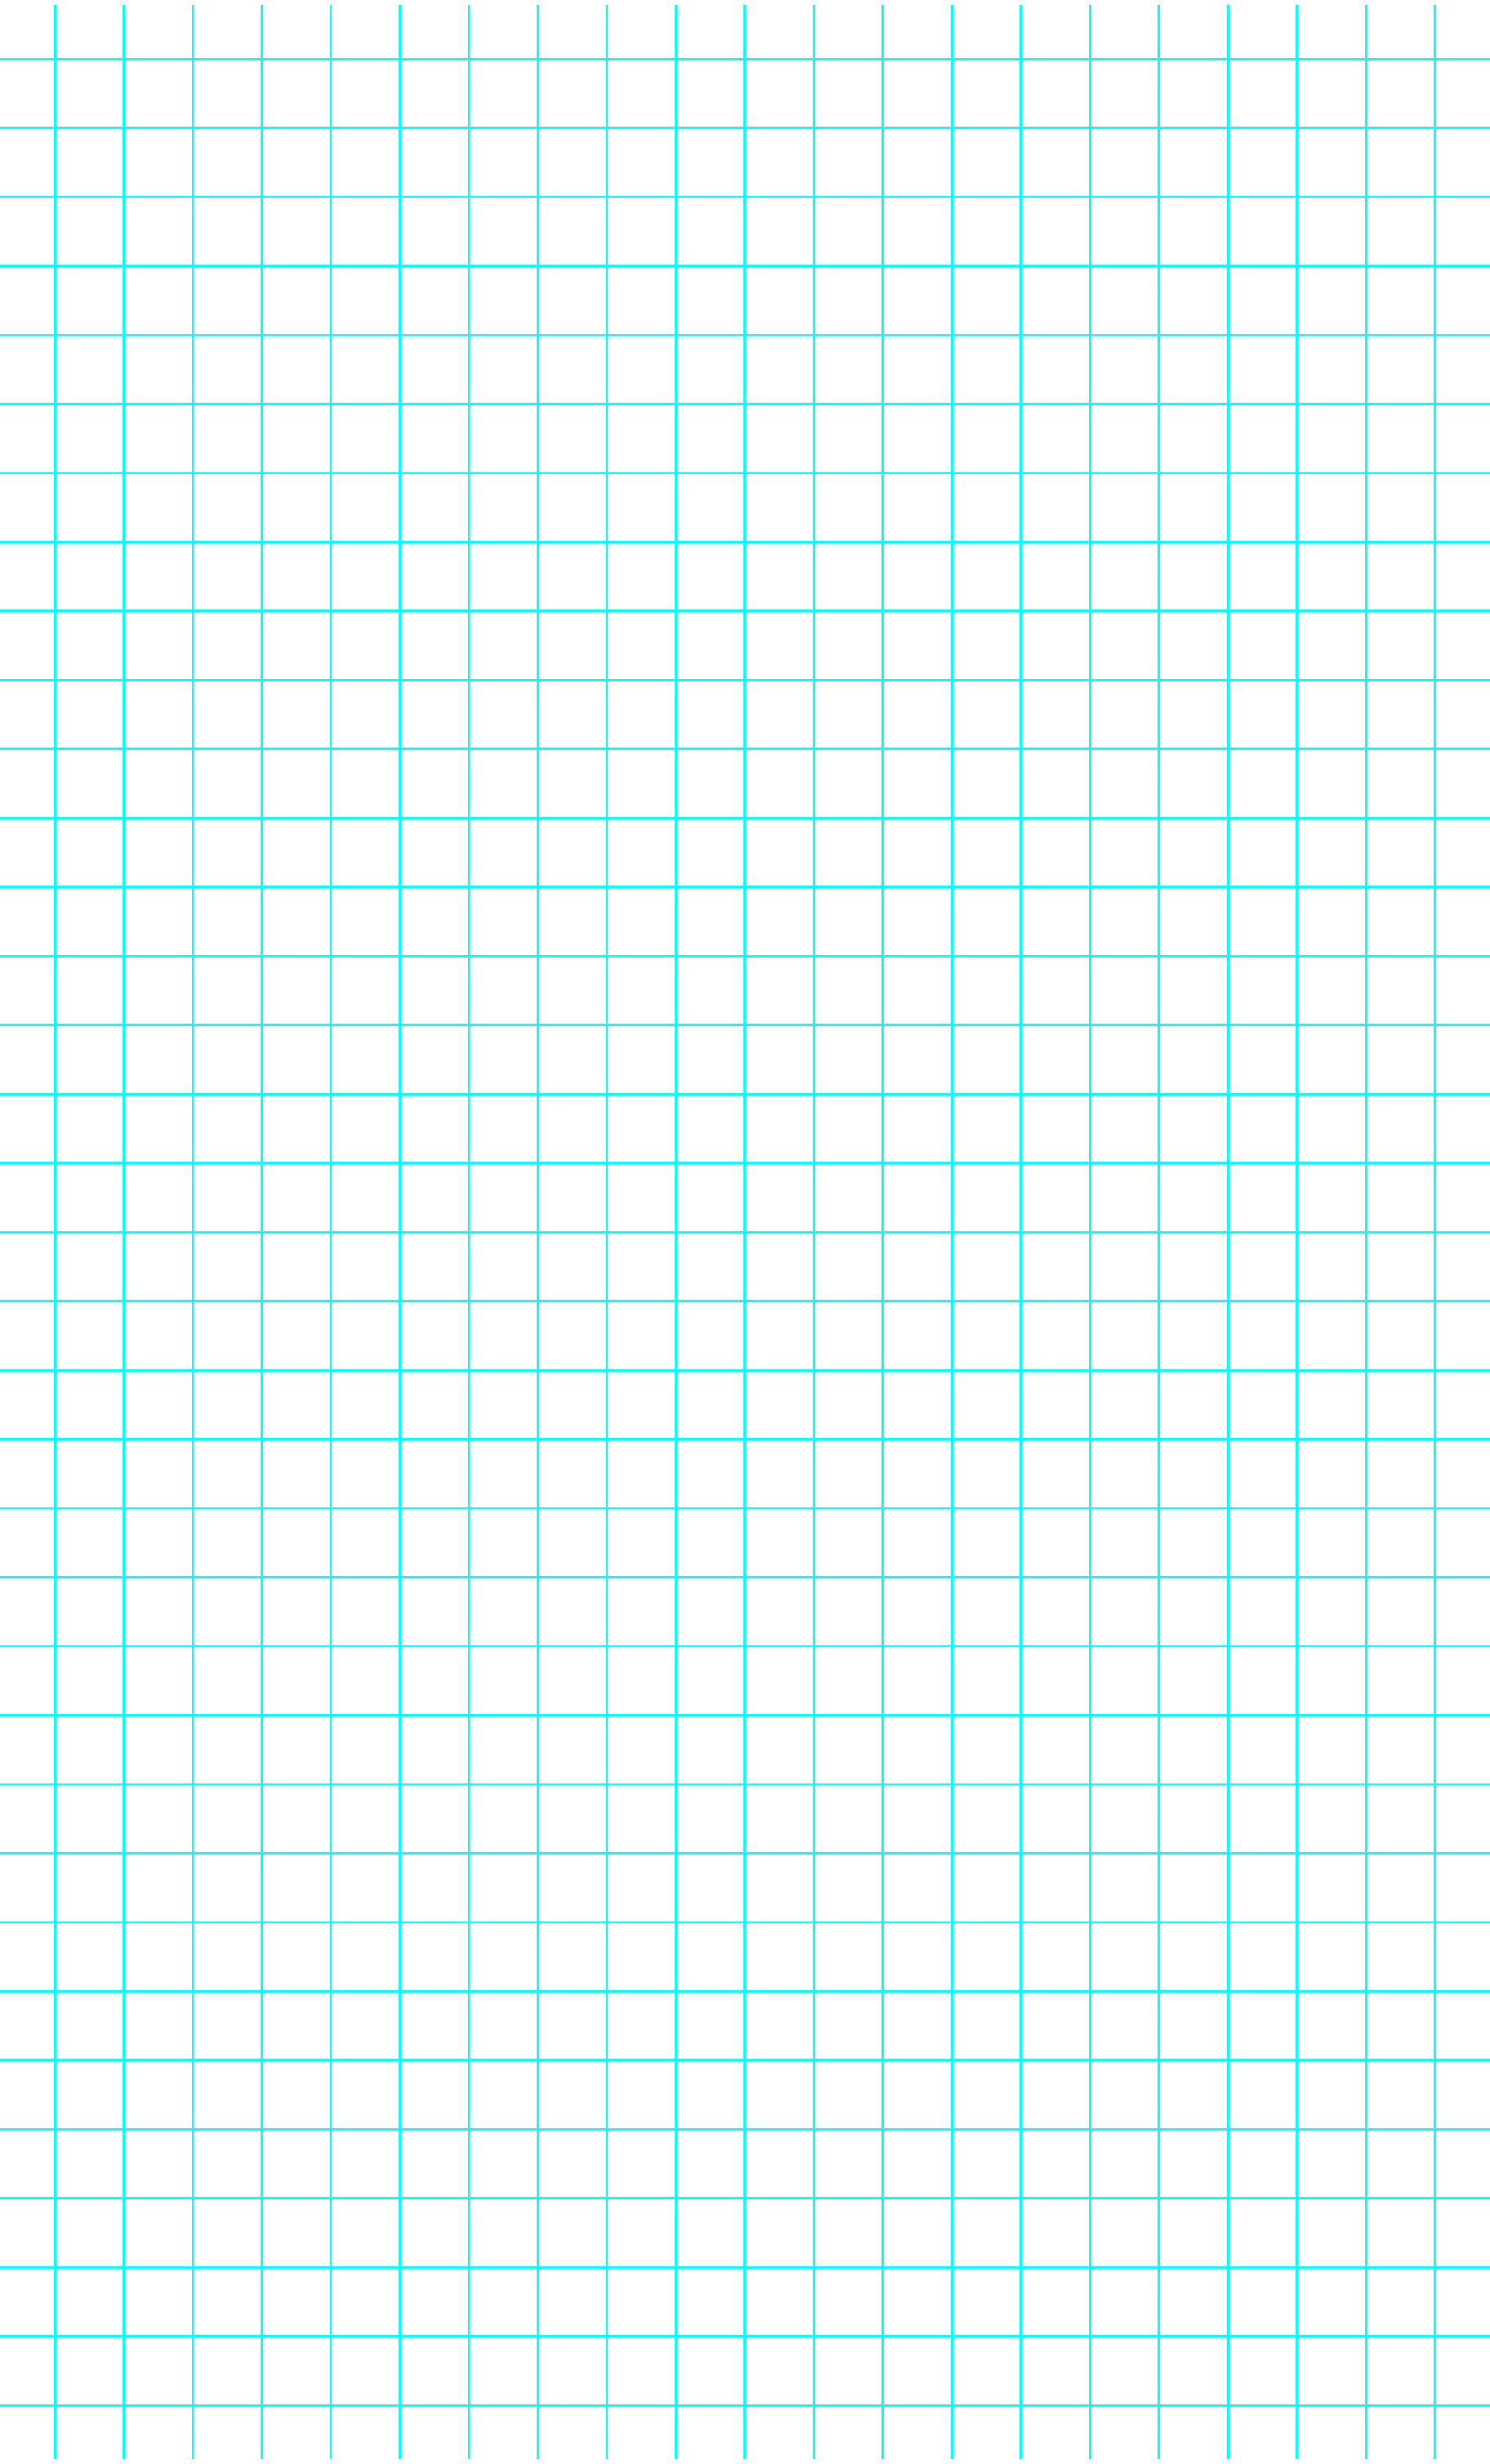 1 Line per cm Graph Paper on LegalSized Paper Free Download